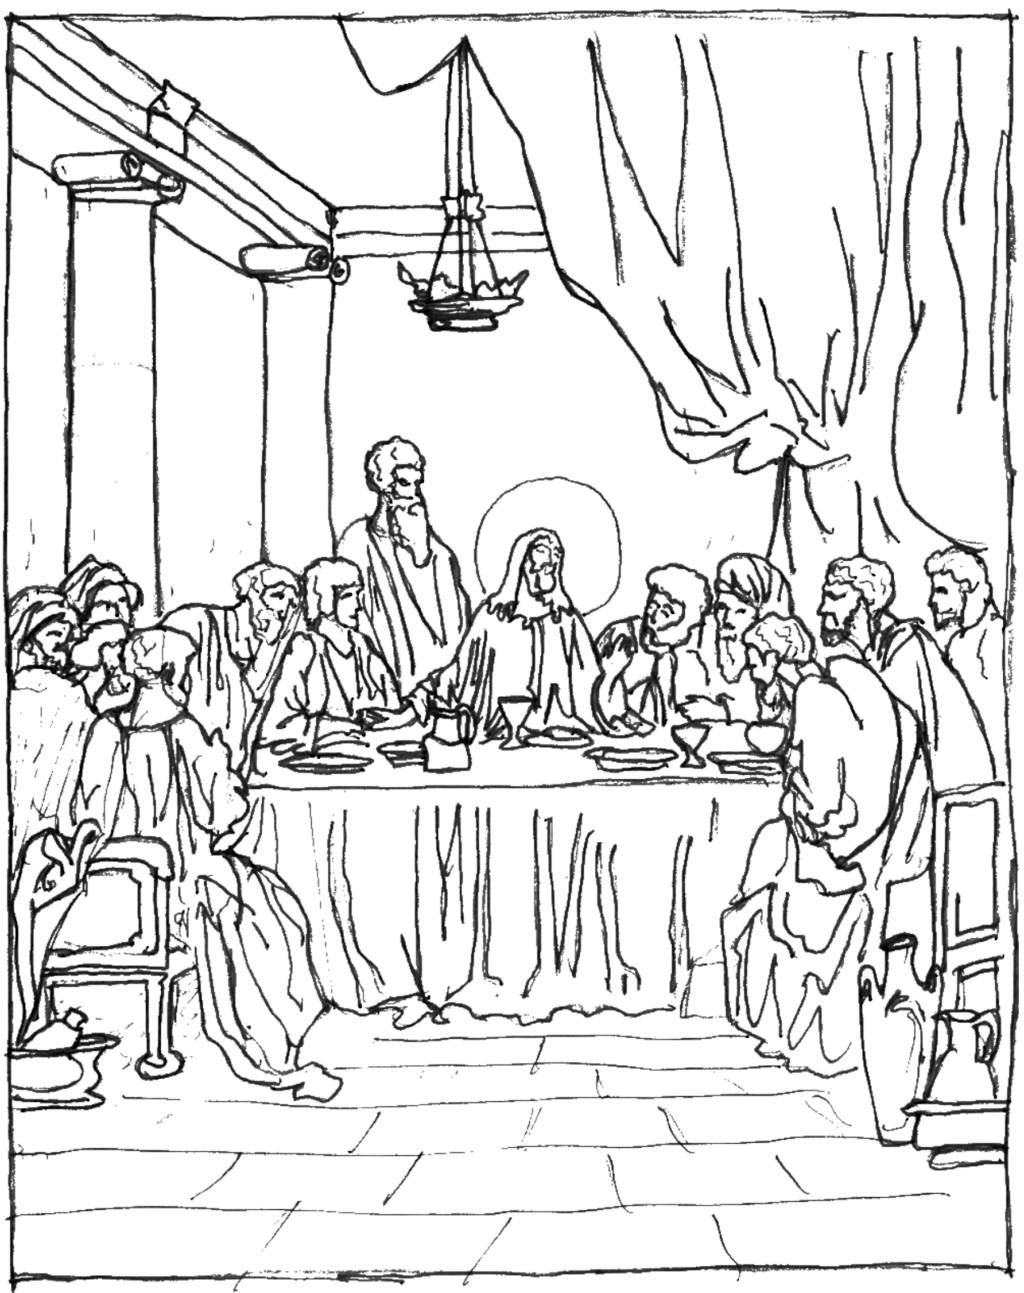 last supper coloring page the history of the last supper coloring page kids play color supper last coloring page